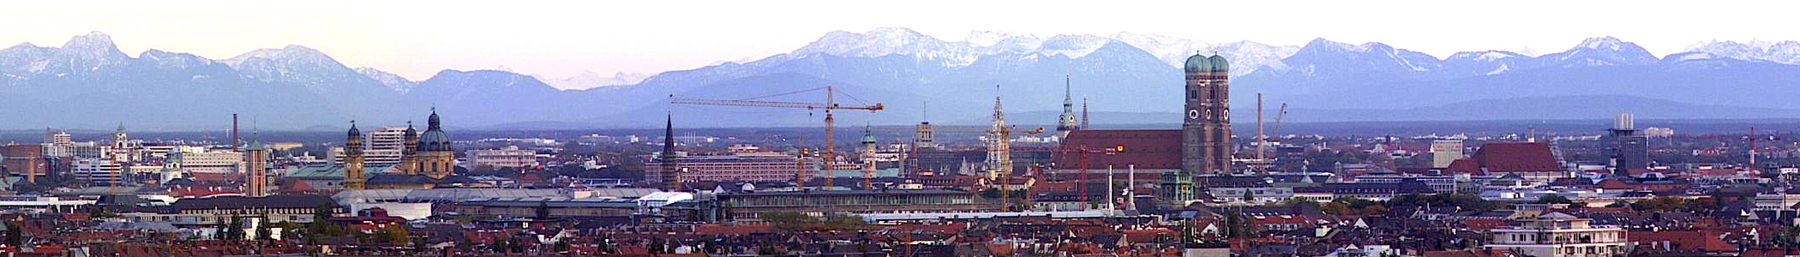 Munich Panorama Alps Frauenkirche Wikivoyage Banner.png